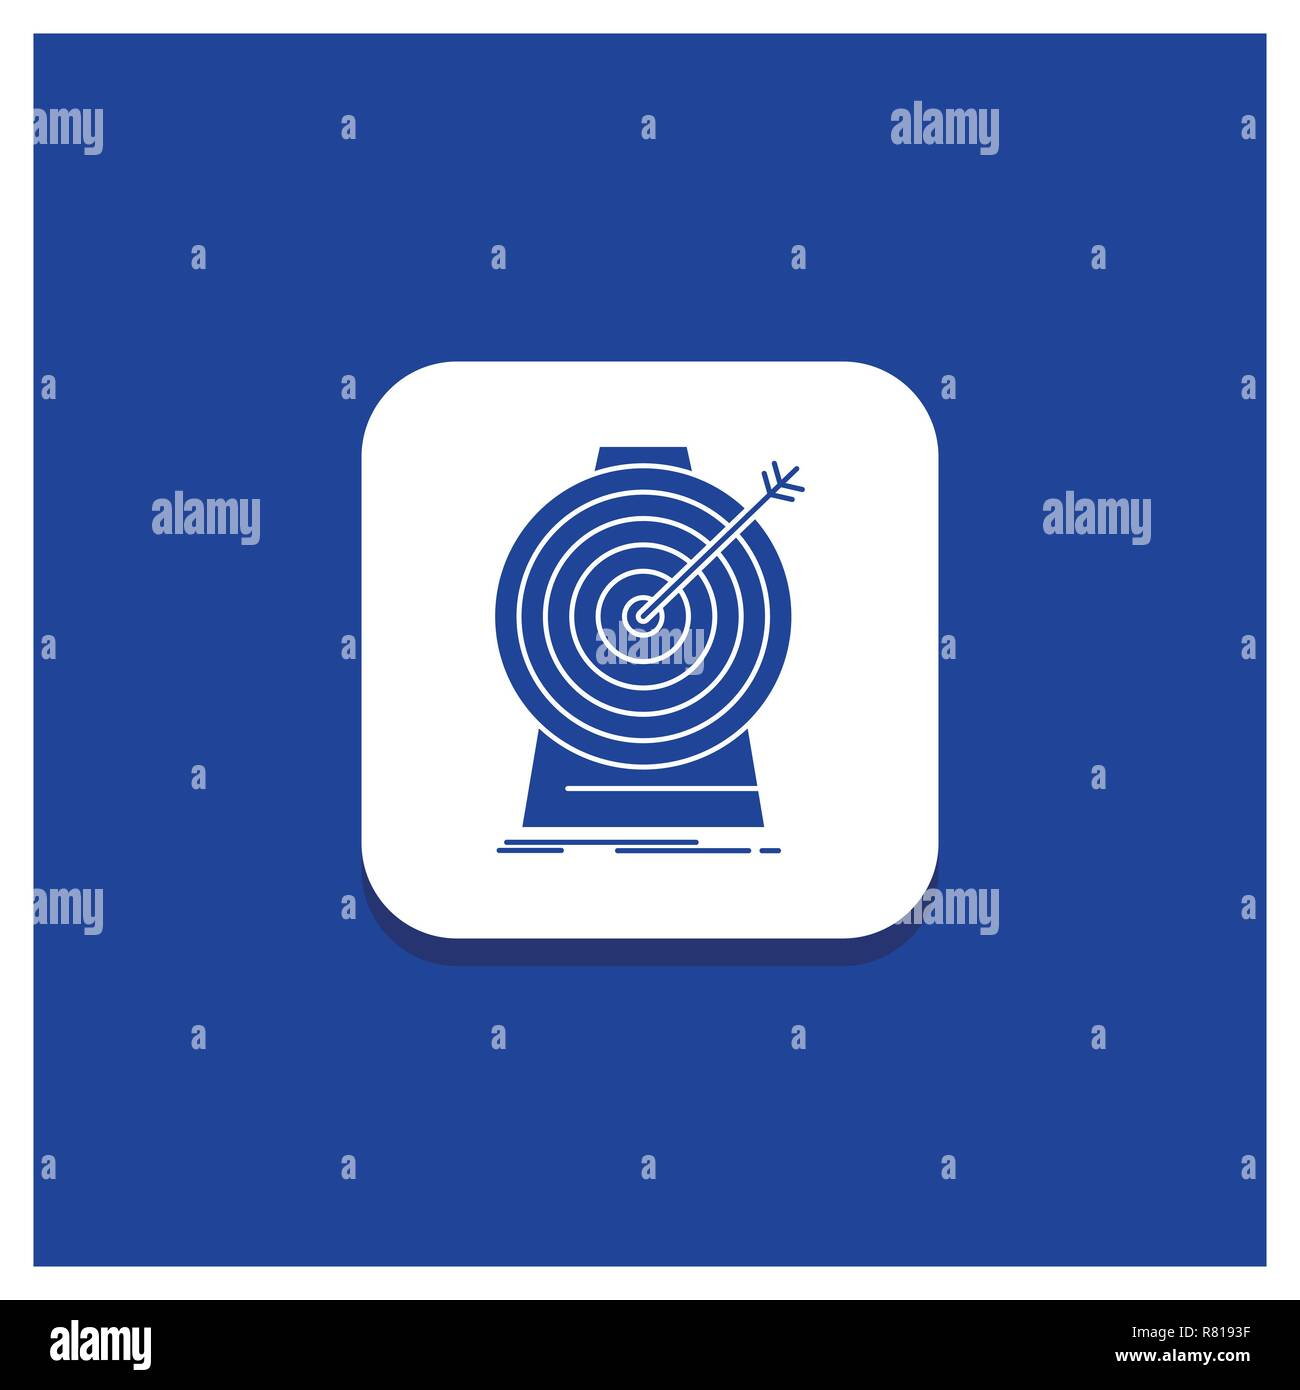 blue round button for aim focus goal target targeting glyph icon stock vector image art alamy alamy